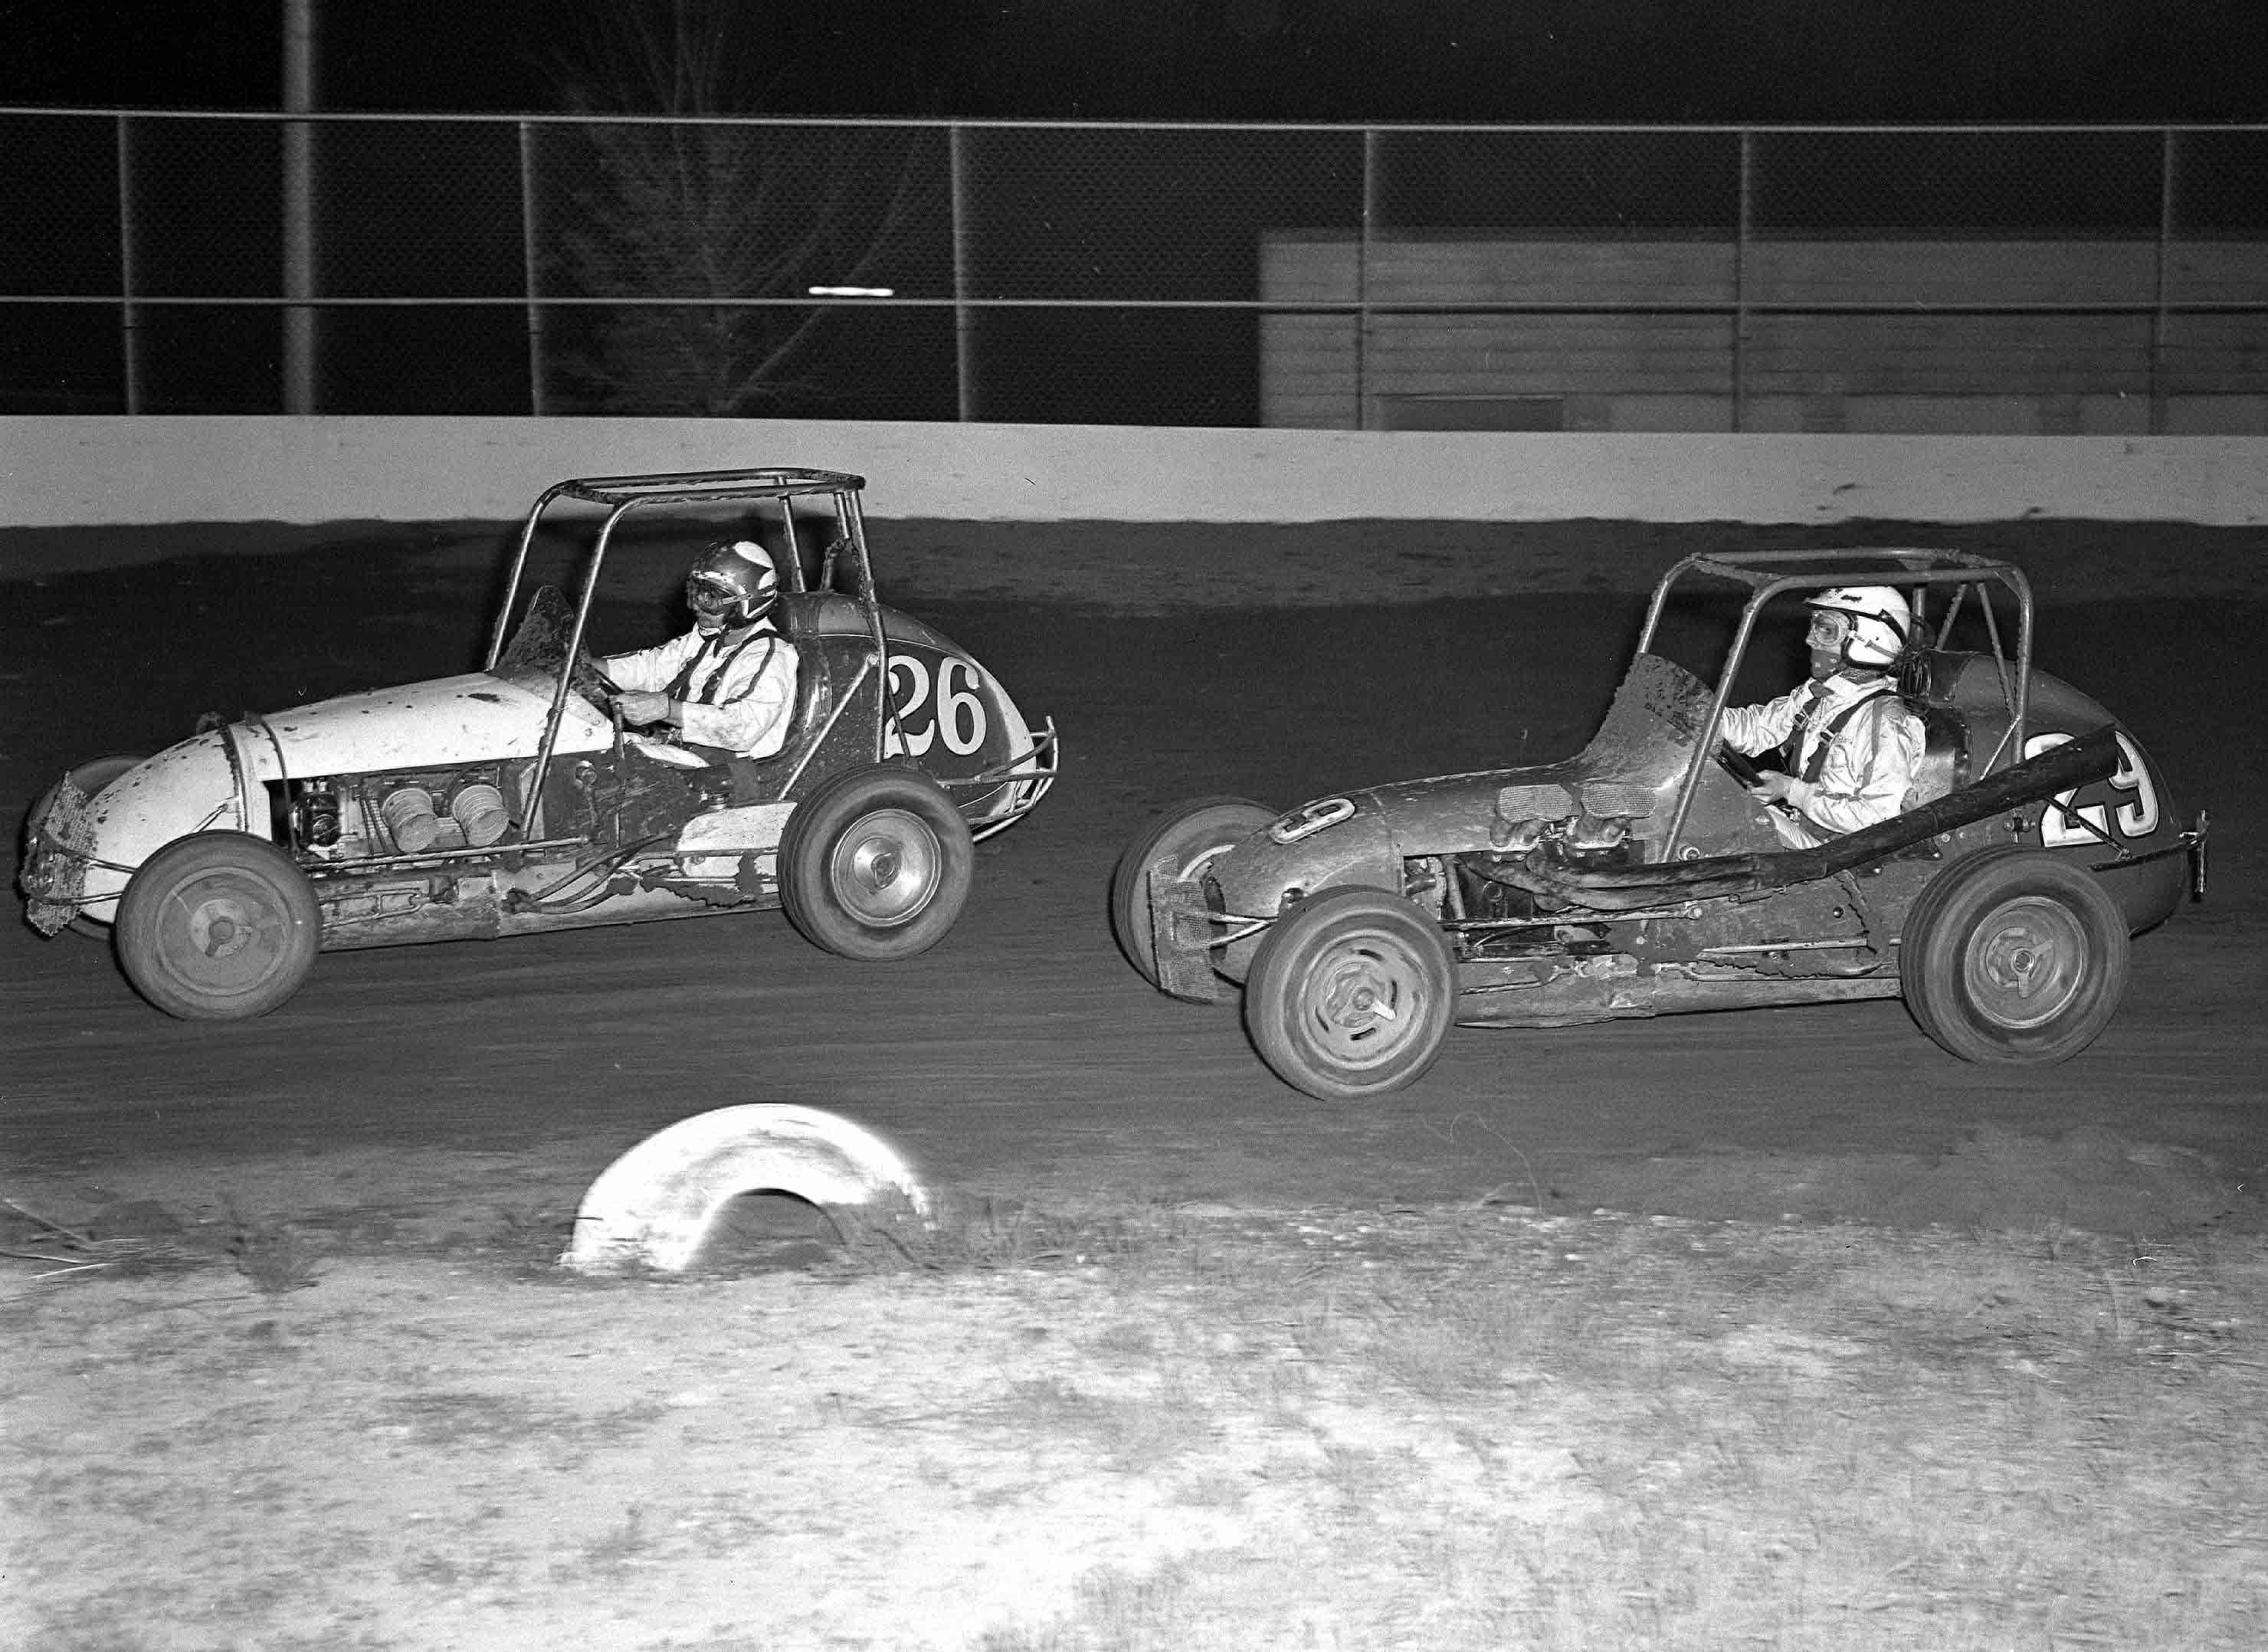 Illinois will county peotone - Tom Corcoran 29 Chases Veteran Driver Danny Kladis 26 During Uara Midget Action At The Will County Fairgrounds On May 20 1972